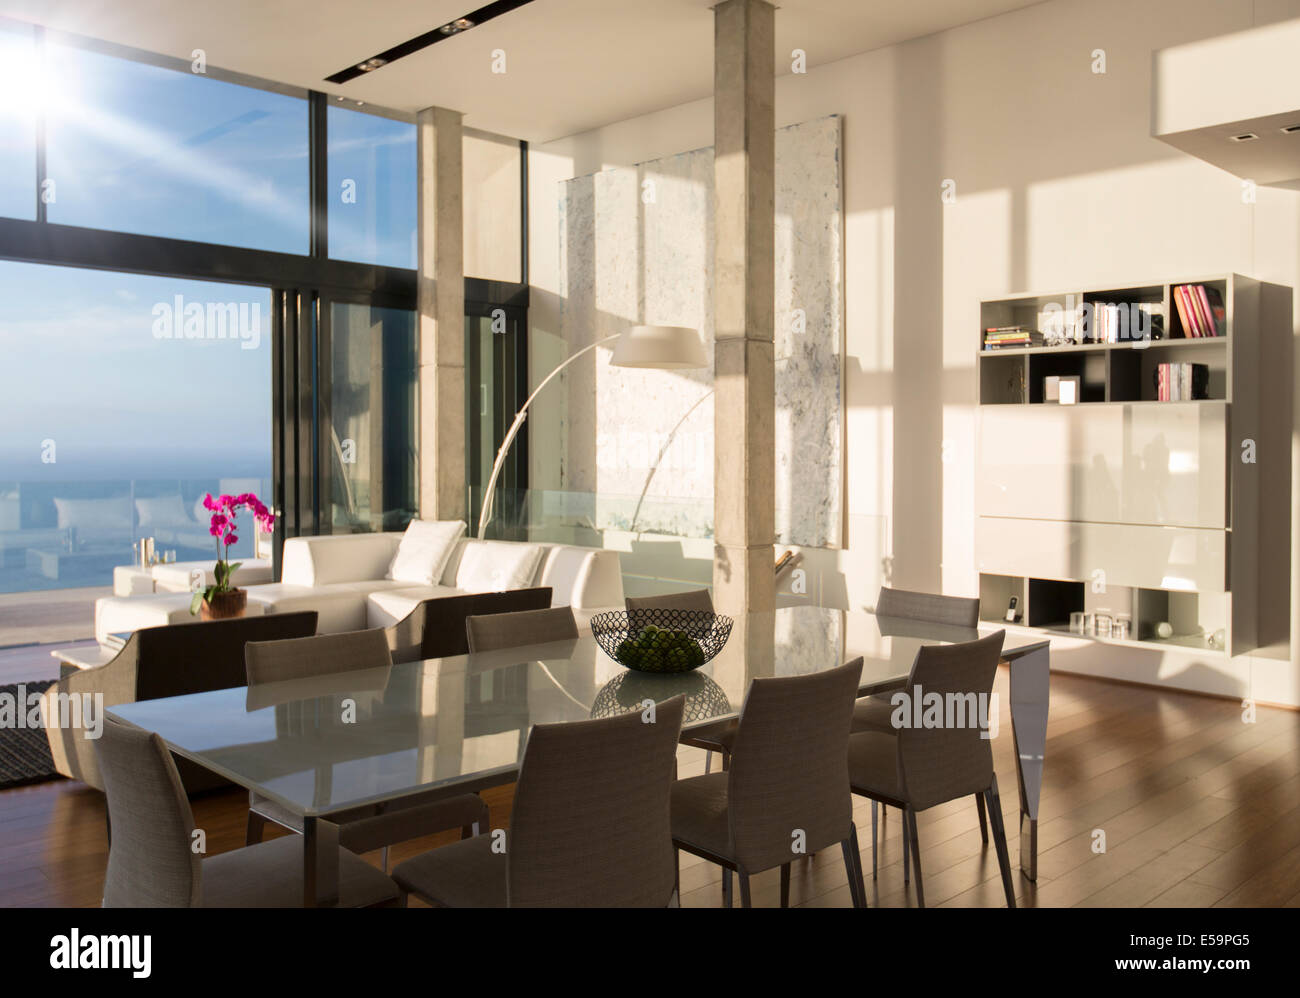 Dining and living space in modern house - Stock Image